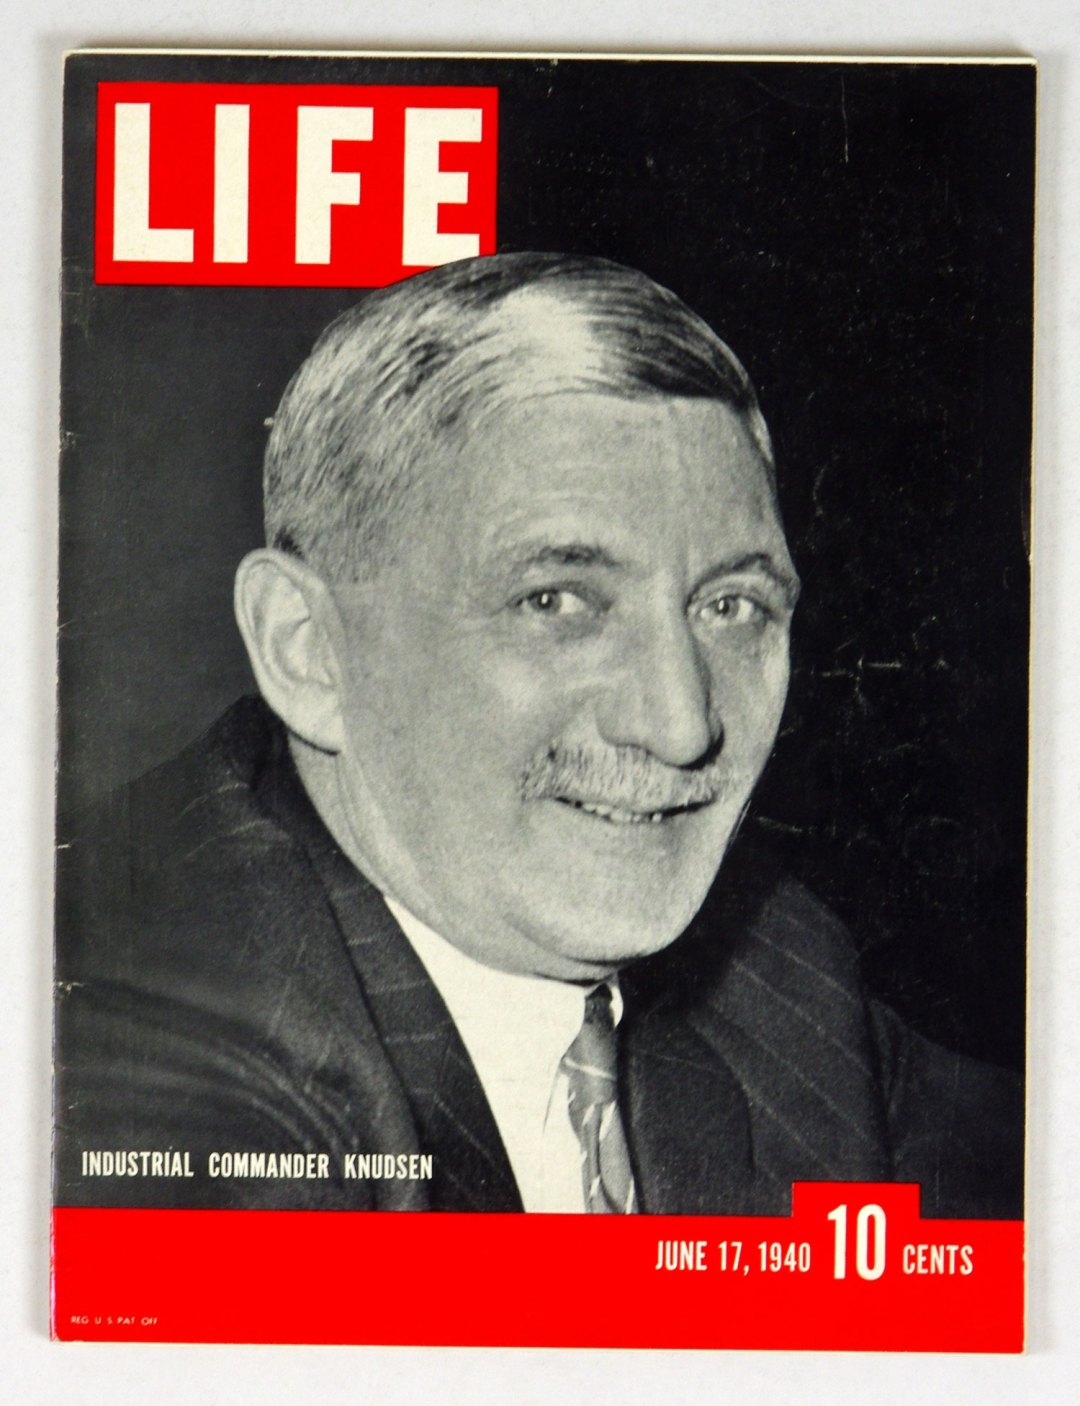 LIFE Magazine 1940 June 17 Industrial Commander Knudsen